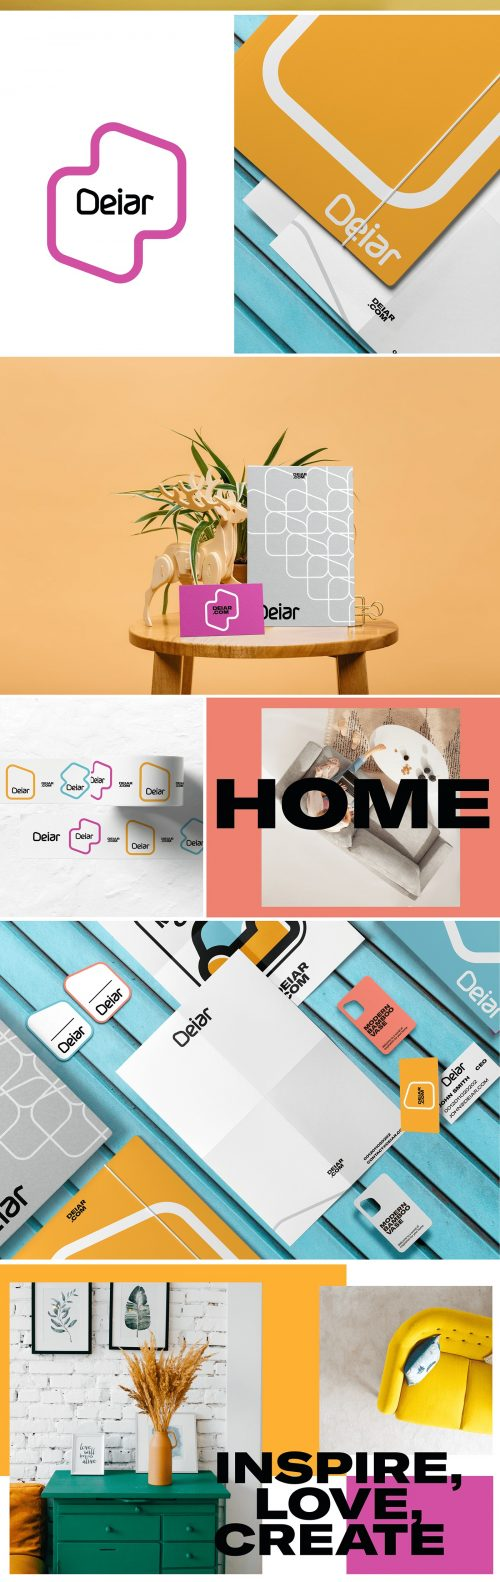 Deiar Home Furniture Interior Design Brand Identity Branding Design